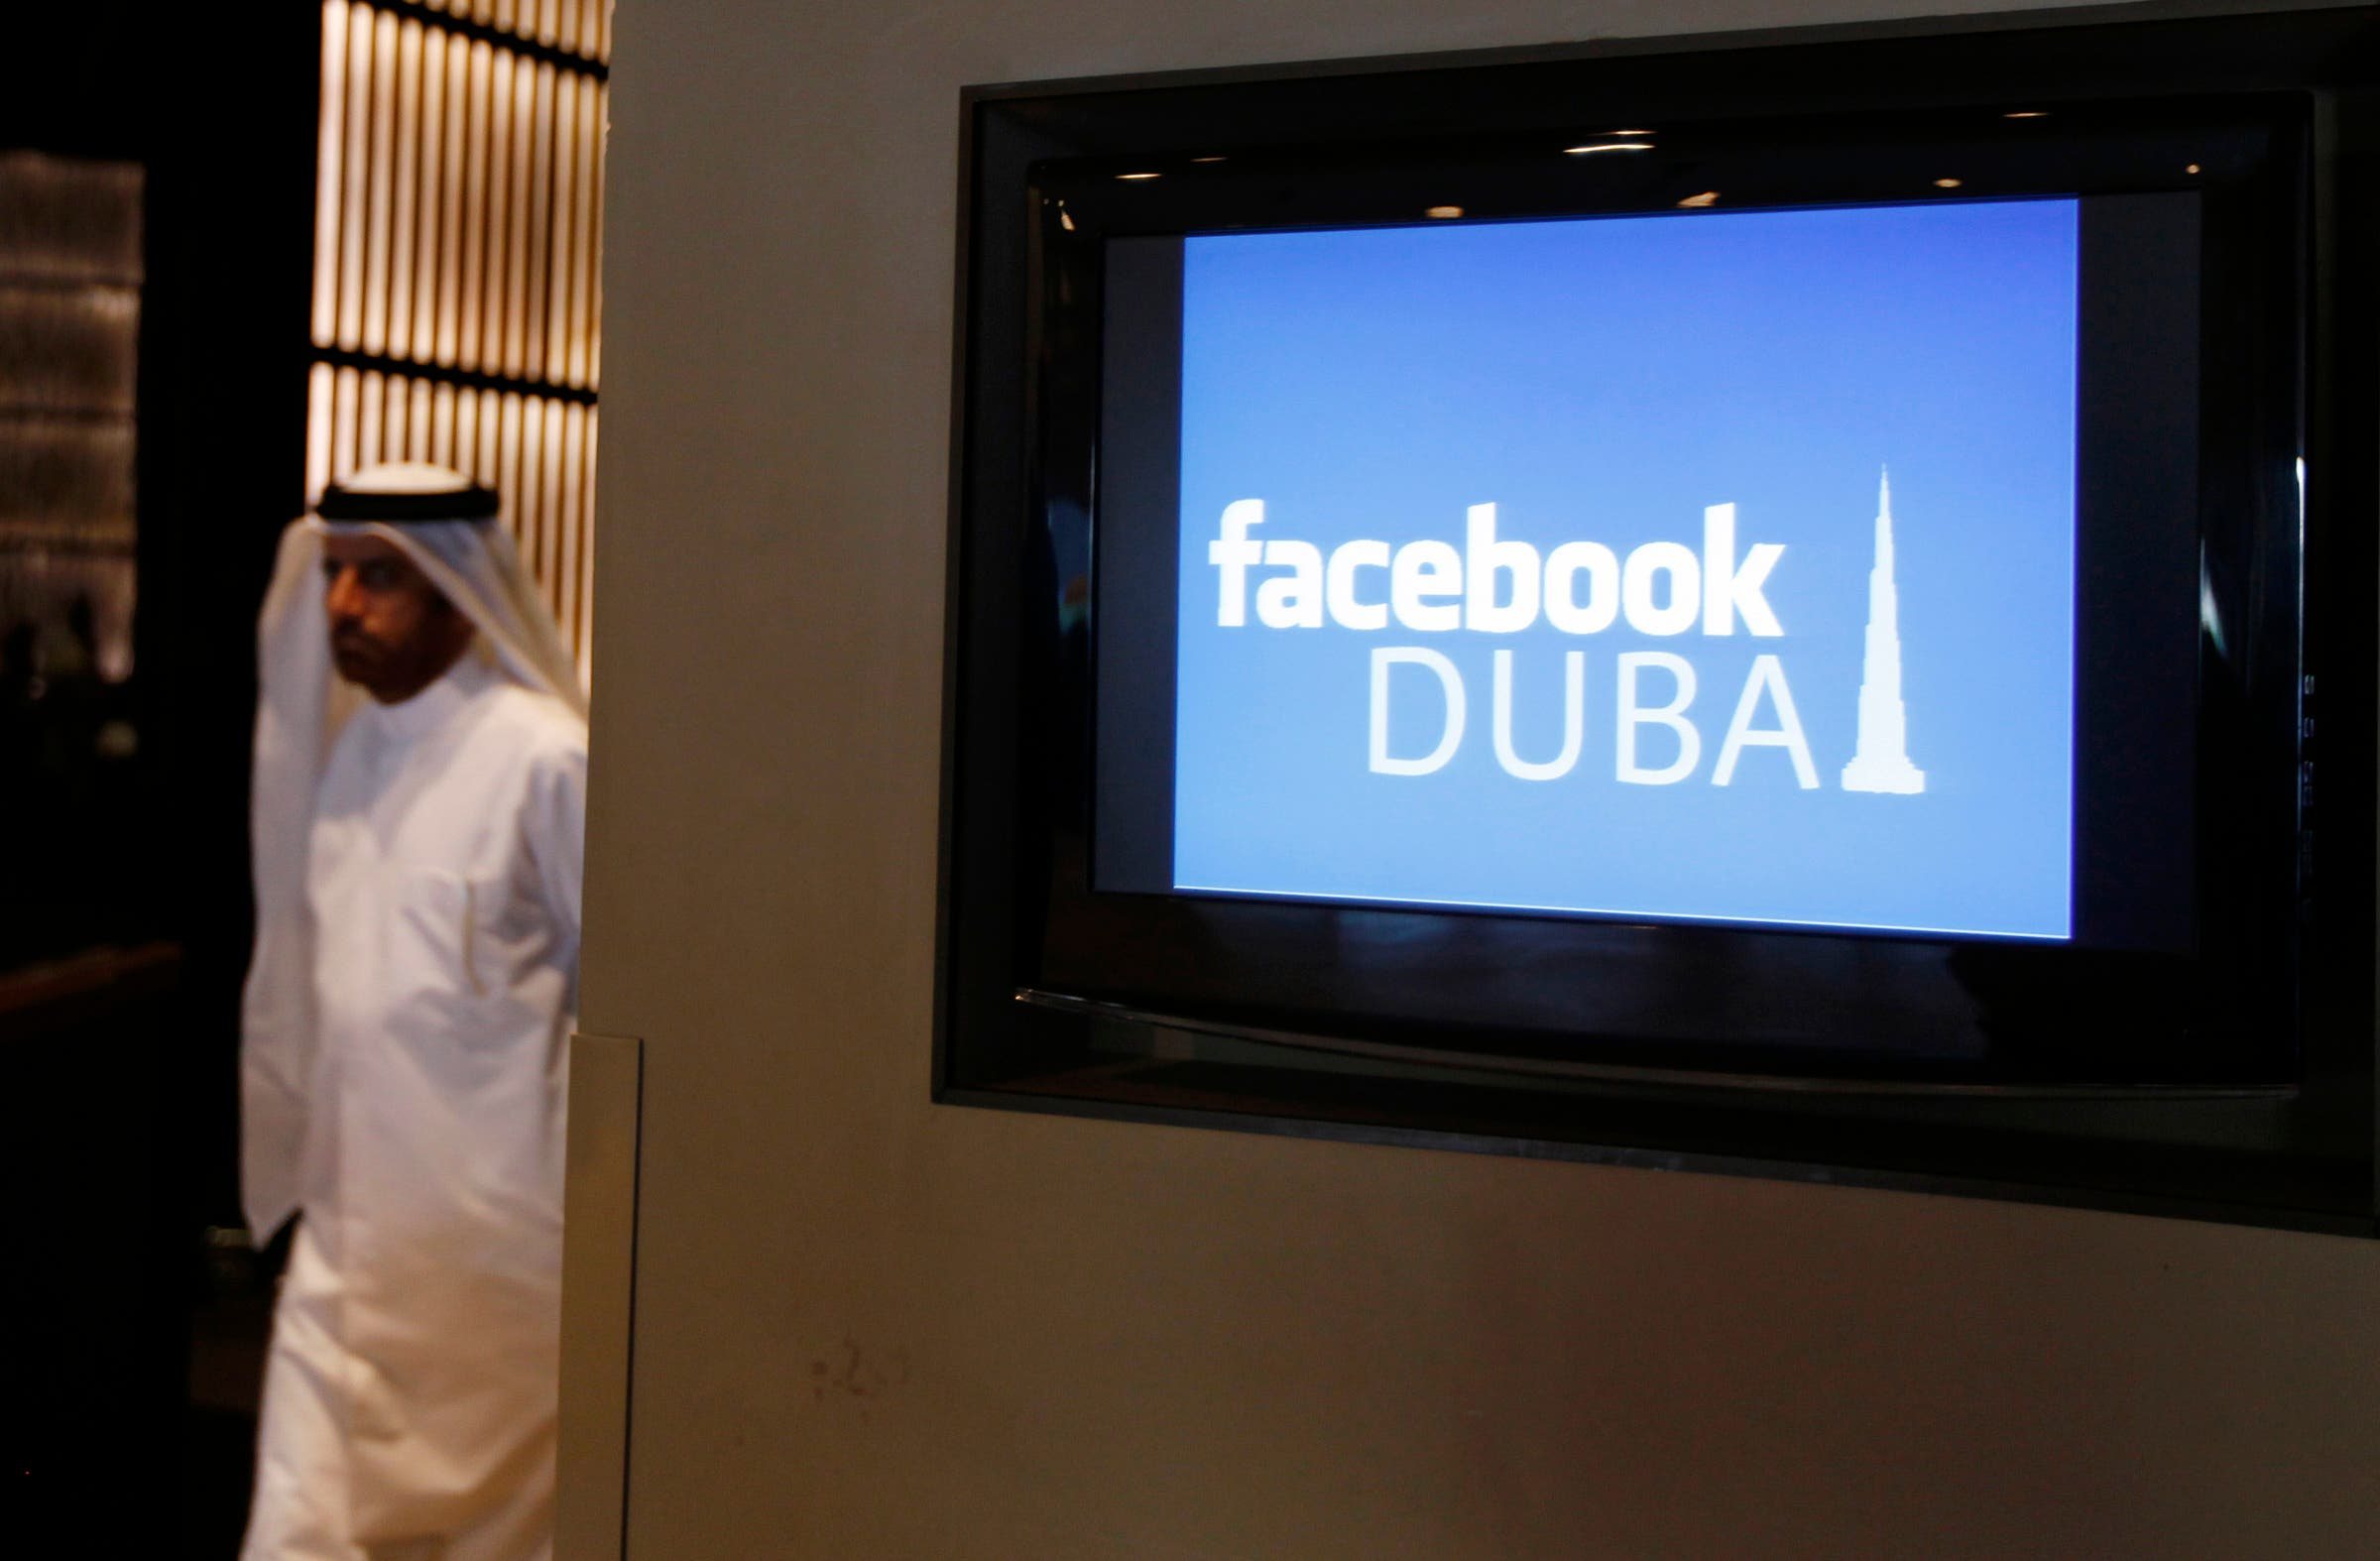 Facebook_BODY2: Facebook opened its first regional office in Dubai in May 2012. (File photo: Reuters)